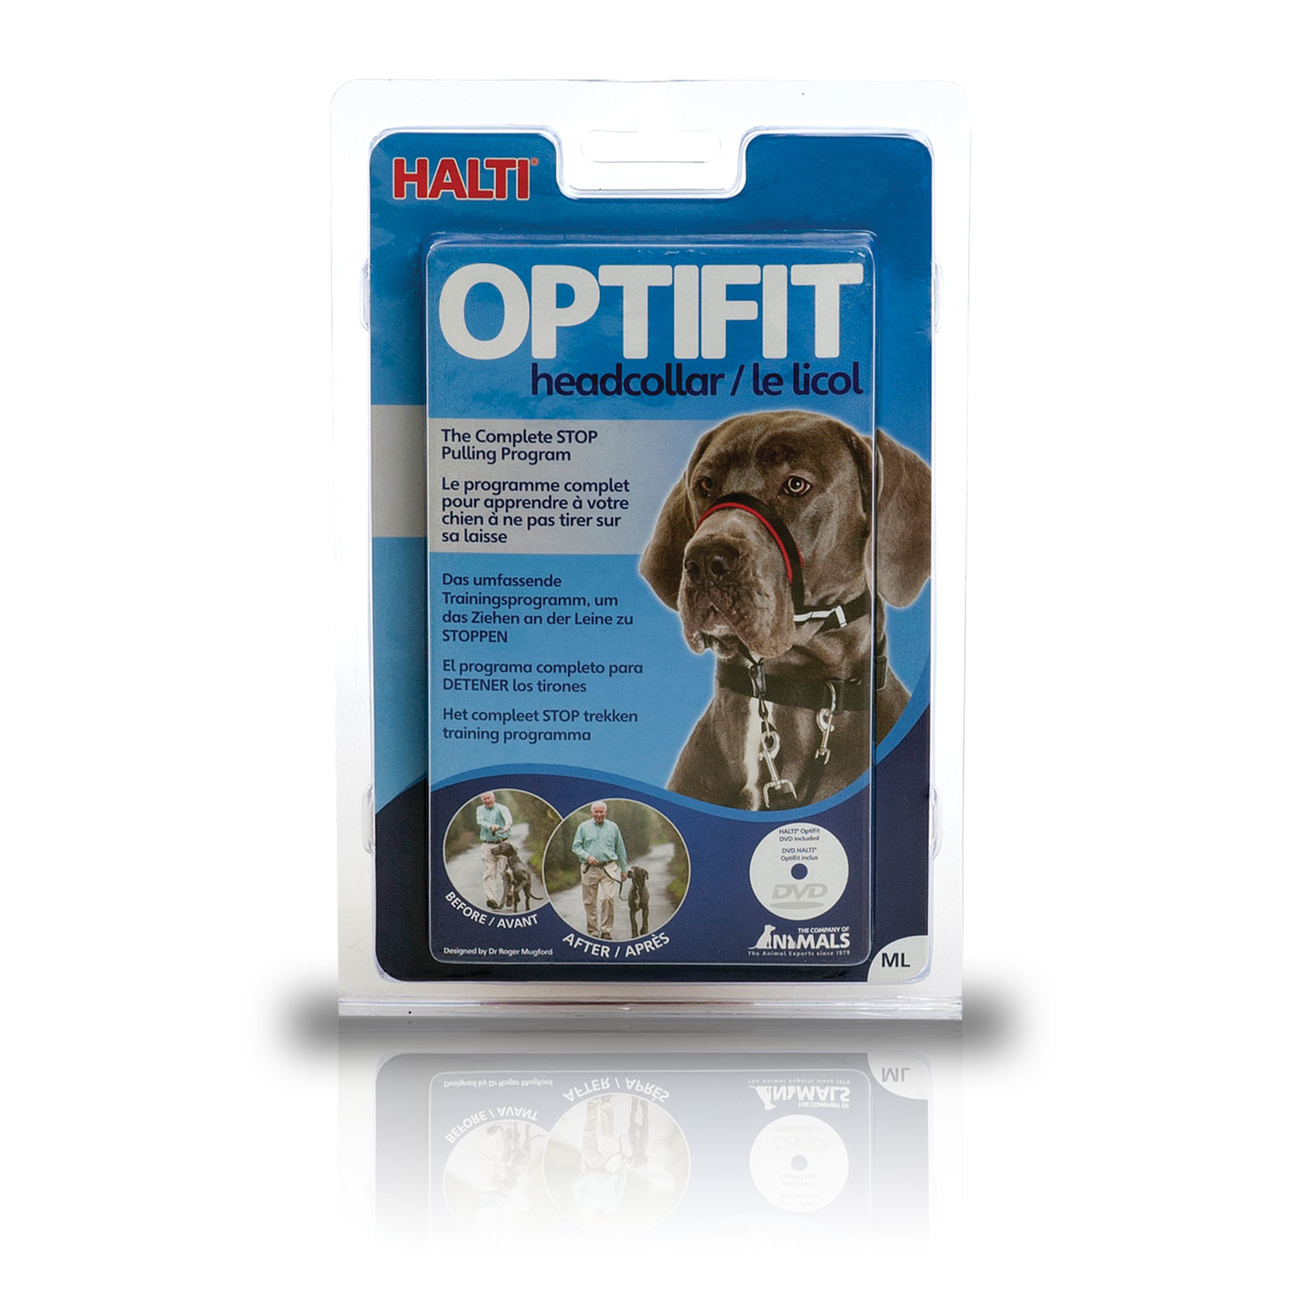 Company of Animals Halti OPTIFIT Headcollar, Bild 6